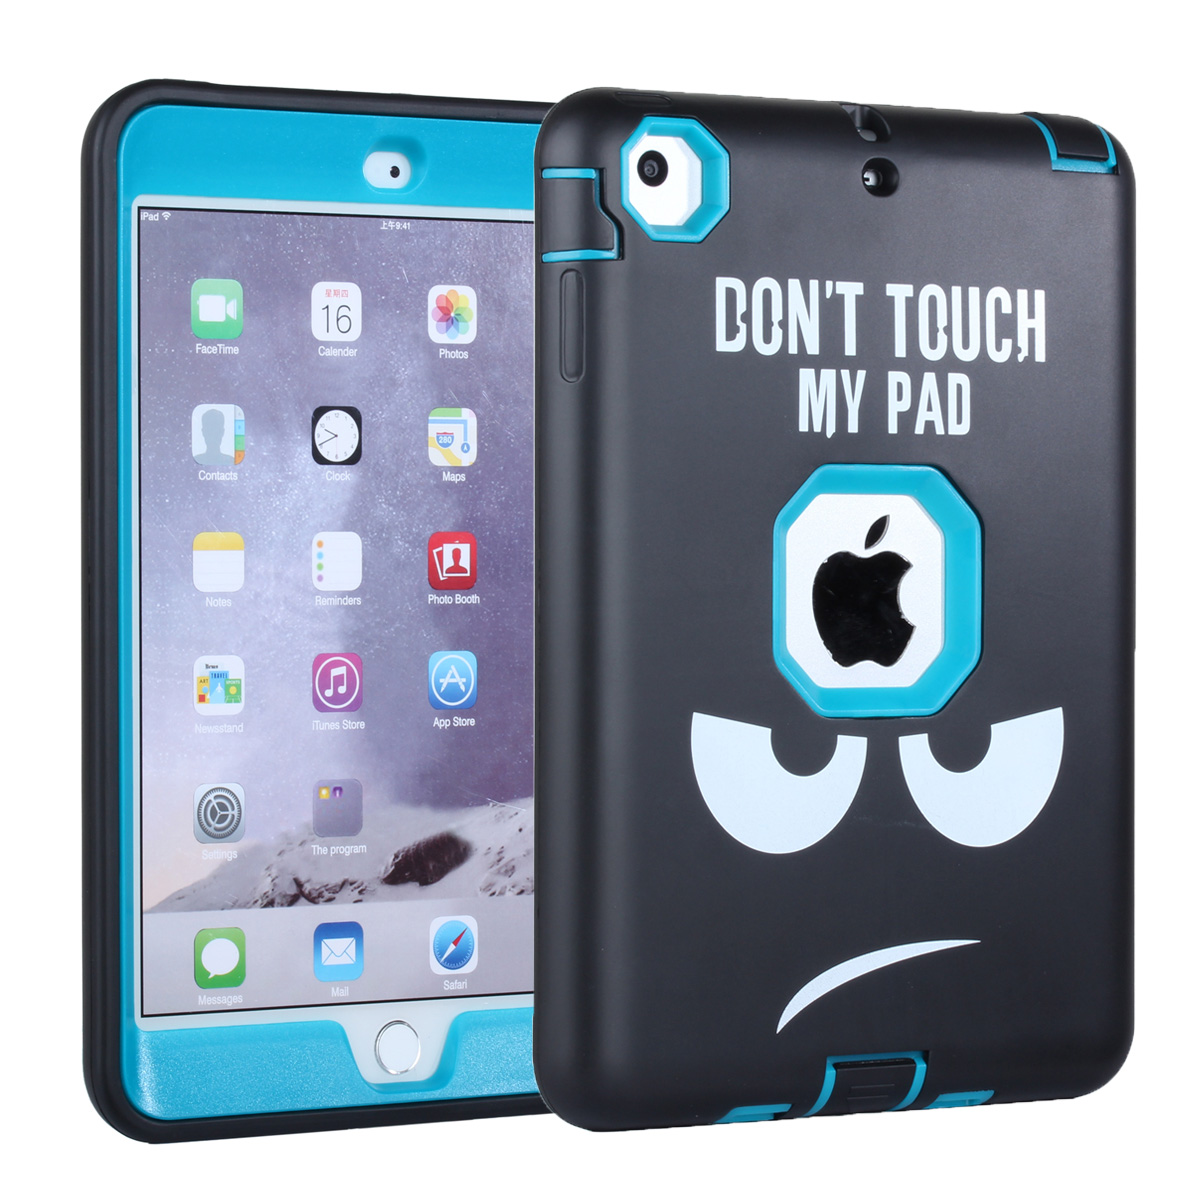 Colorful Silicone Hard Case for Apple iPad Mini 1/2/3 7.9 inch 3 in 1 Heavy Duty Armor Defender Protective Cover for iPad<